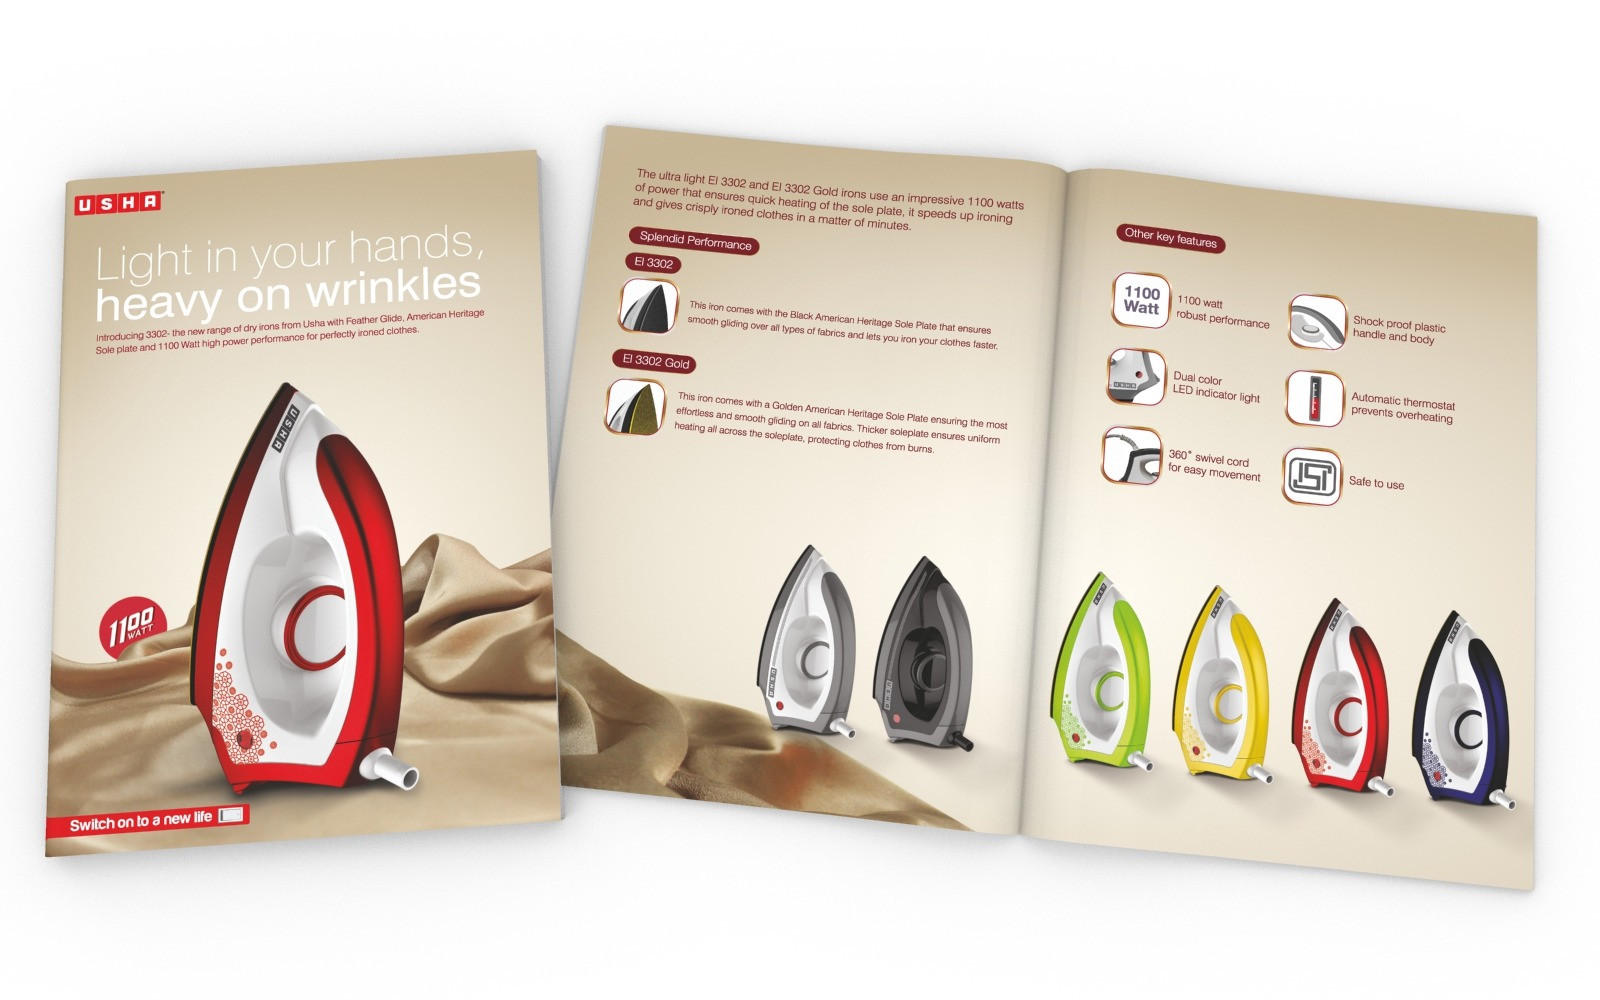 Company Brochure/ Product Catalog design for USHA Iron, A Home appliance company.